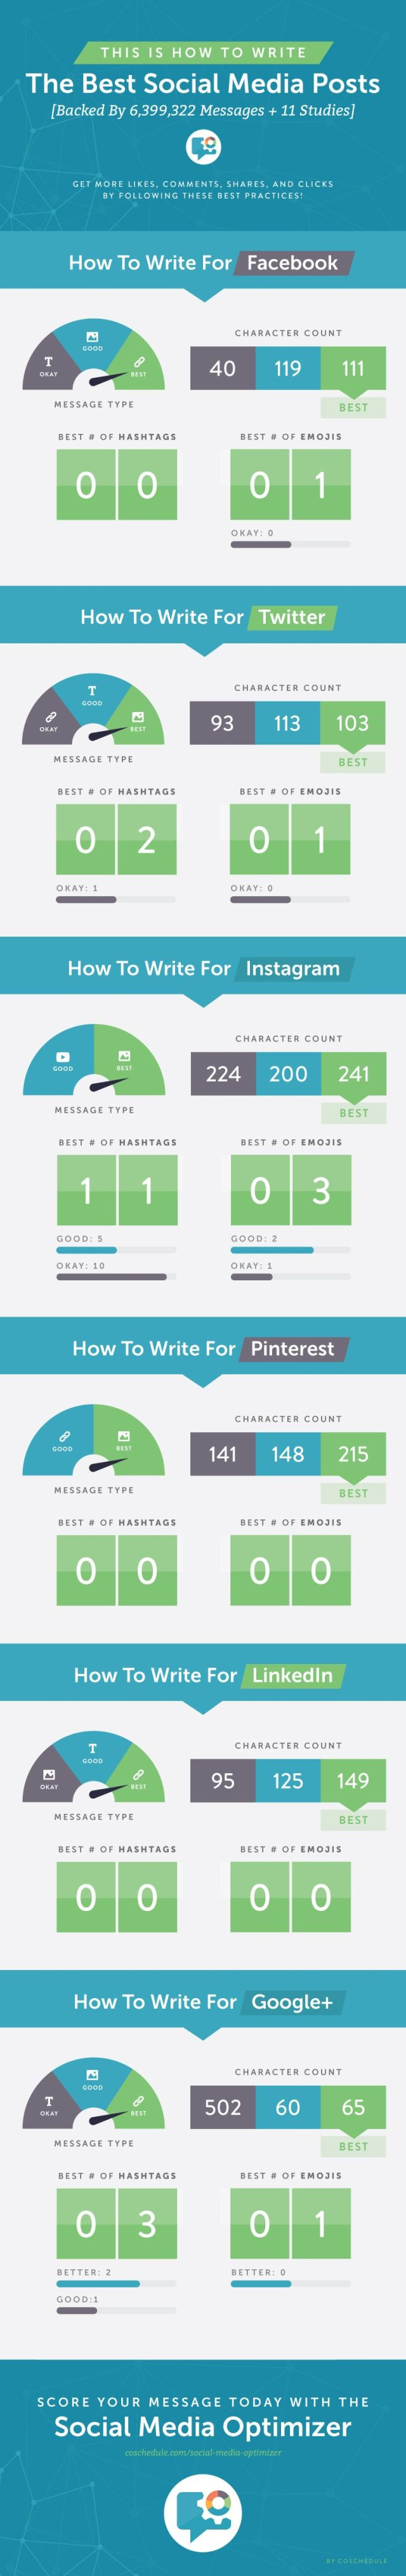 Social Media Posting Tips Infographic